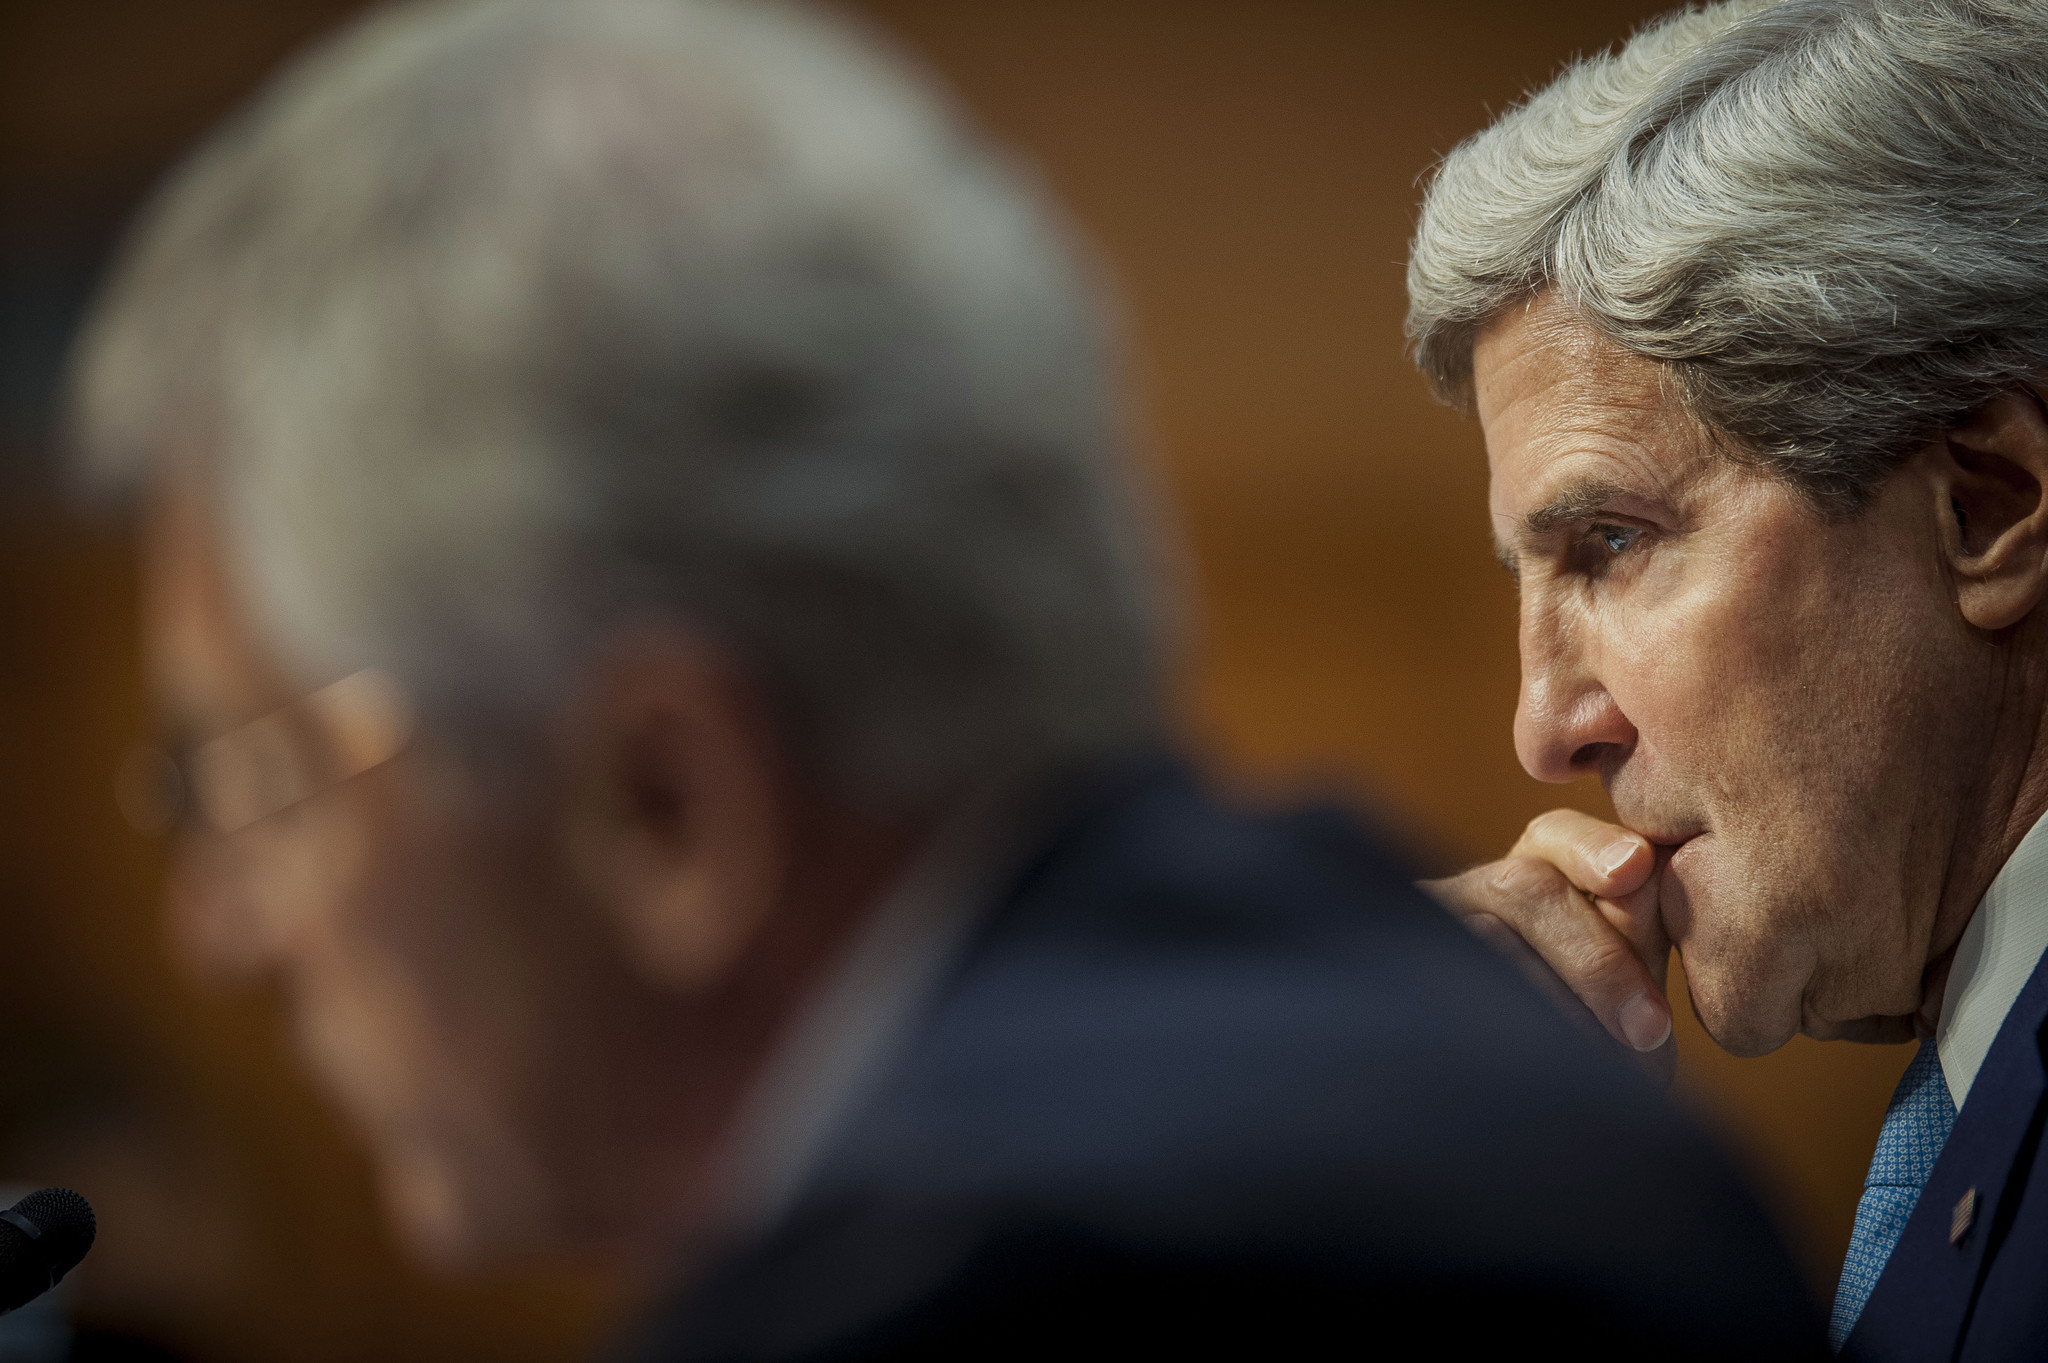 Debate over  strikes on Syria - Kerry listens on